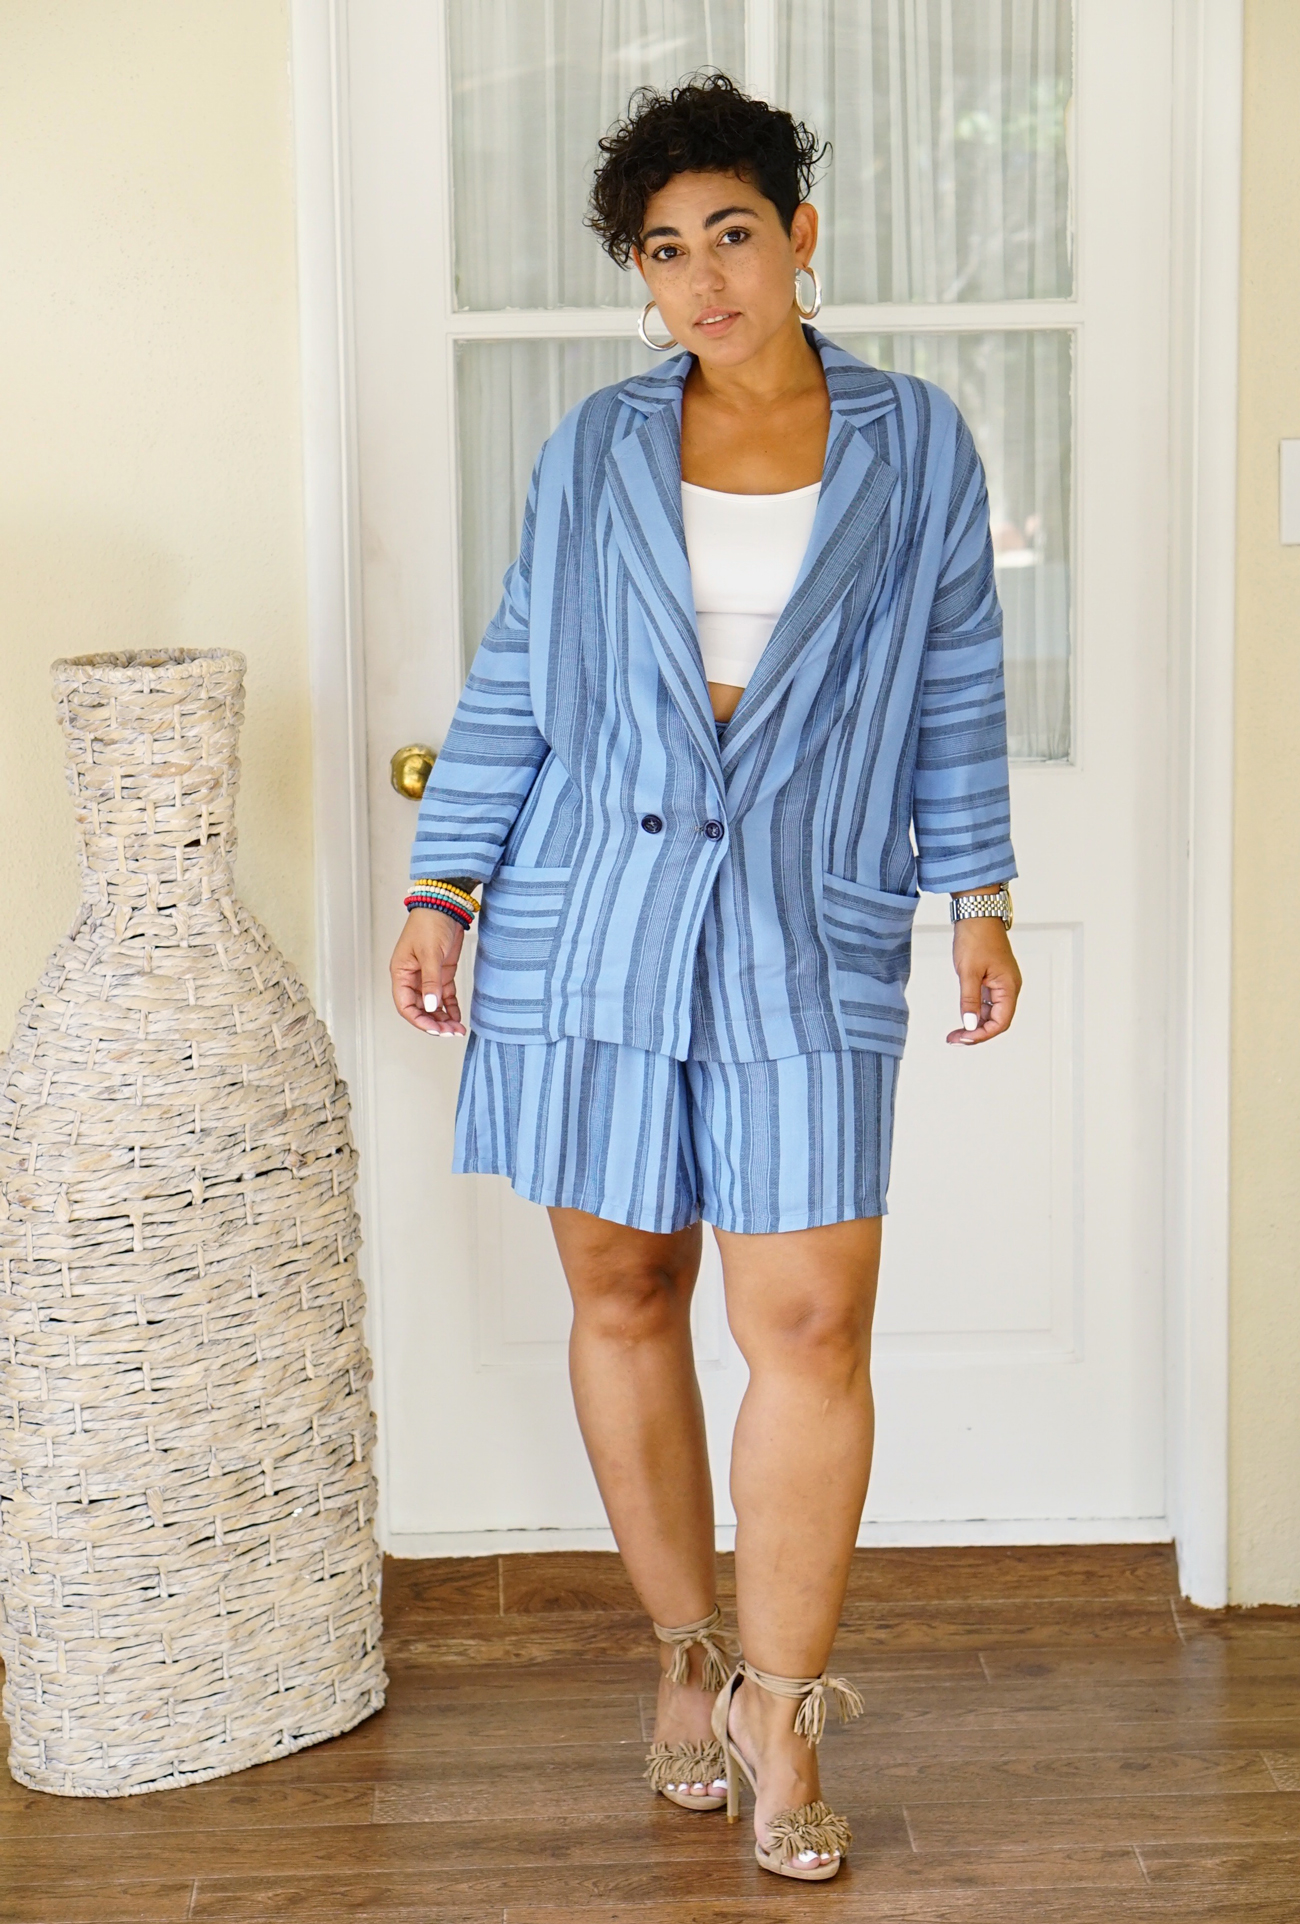 NEW MIMI G FOR SIMPLICITY PRE-SPRING PATTERNS 1 OF 2 | Mimi G Style